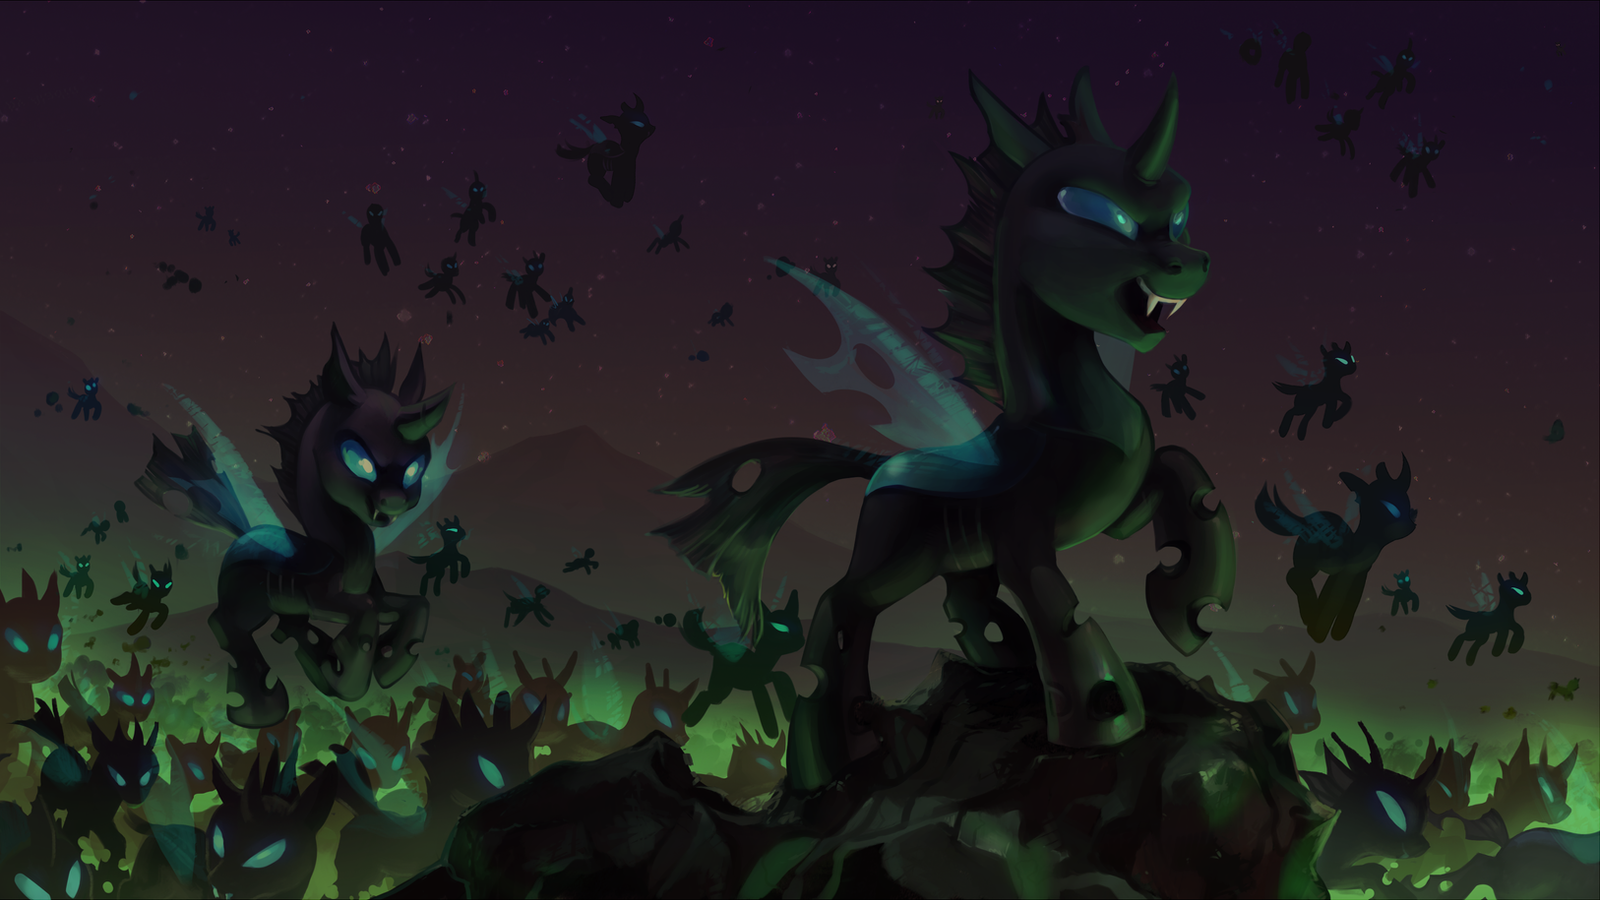 invasion_by_sharedast-da386uw.png